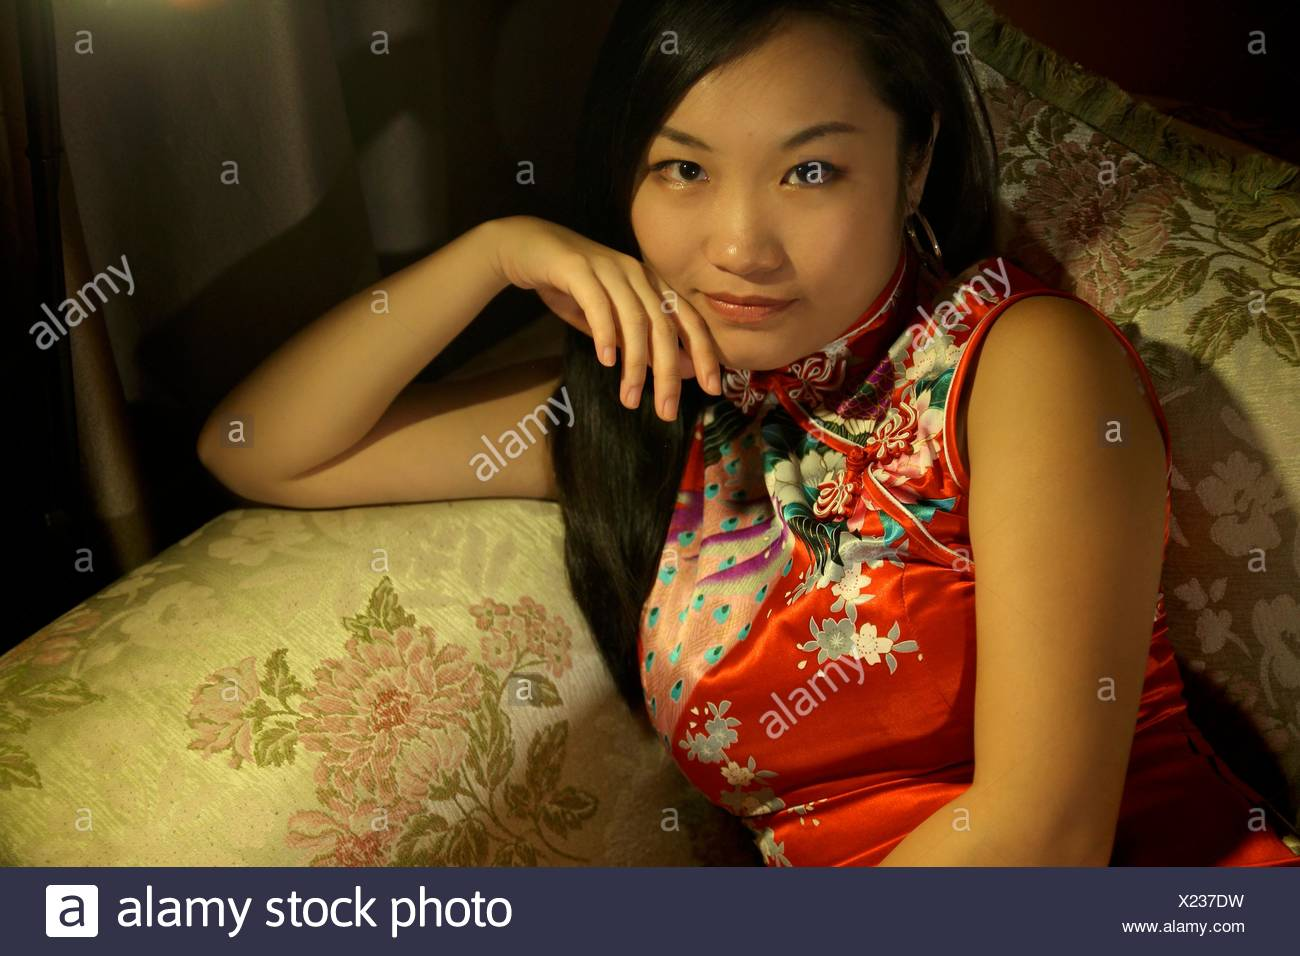 527b9aca9 Stock Photo. Enlarge. Portrait of a beautiful young Chinese girl wearing a  traditional Chinese dress qipao.